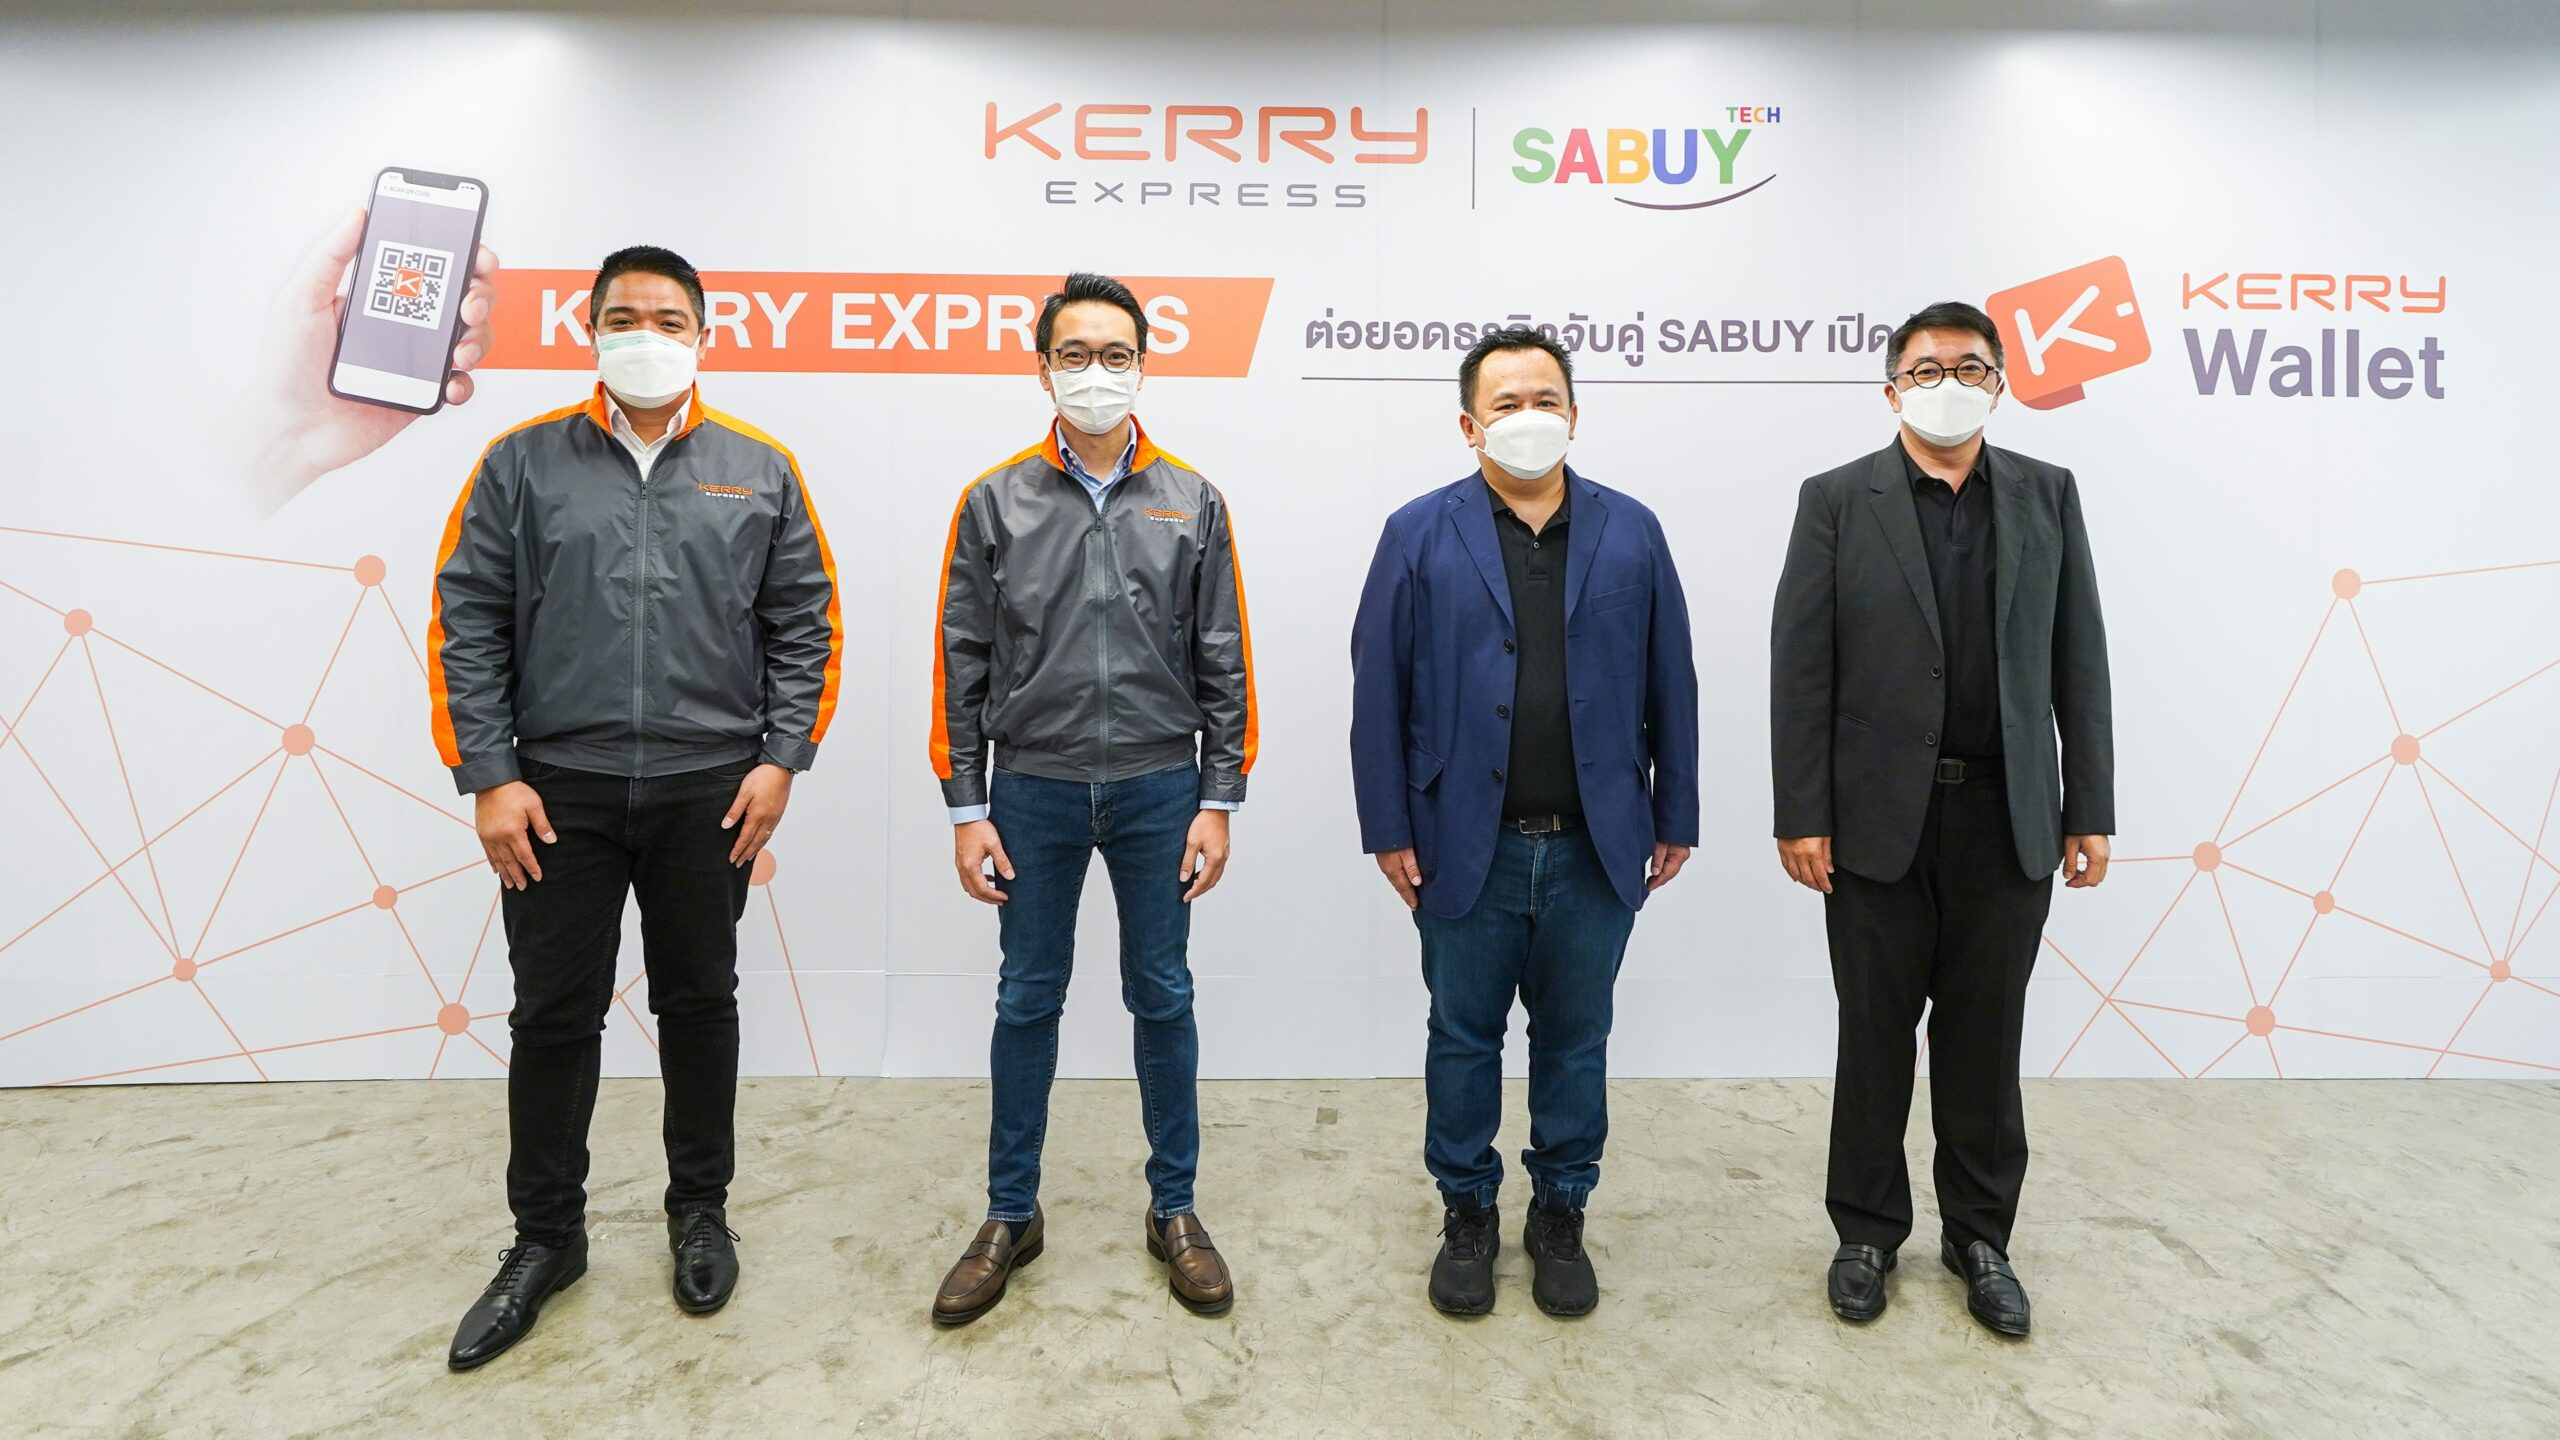 News:kerry-express-introduces-kerry-wallet-and-taps-in-users-social-lifestyle-supported-by-sabuy-technology-for-e-commerce-social-commerce-business-expansion